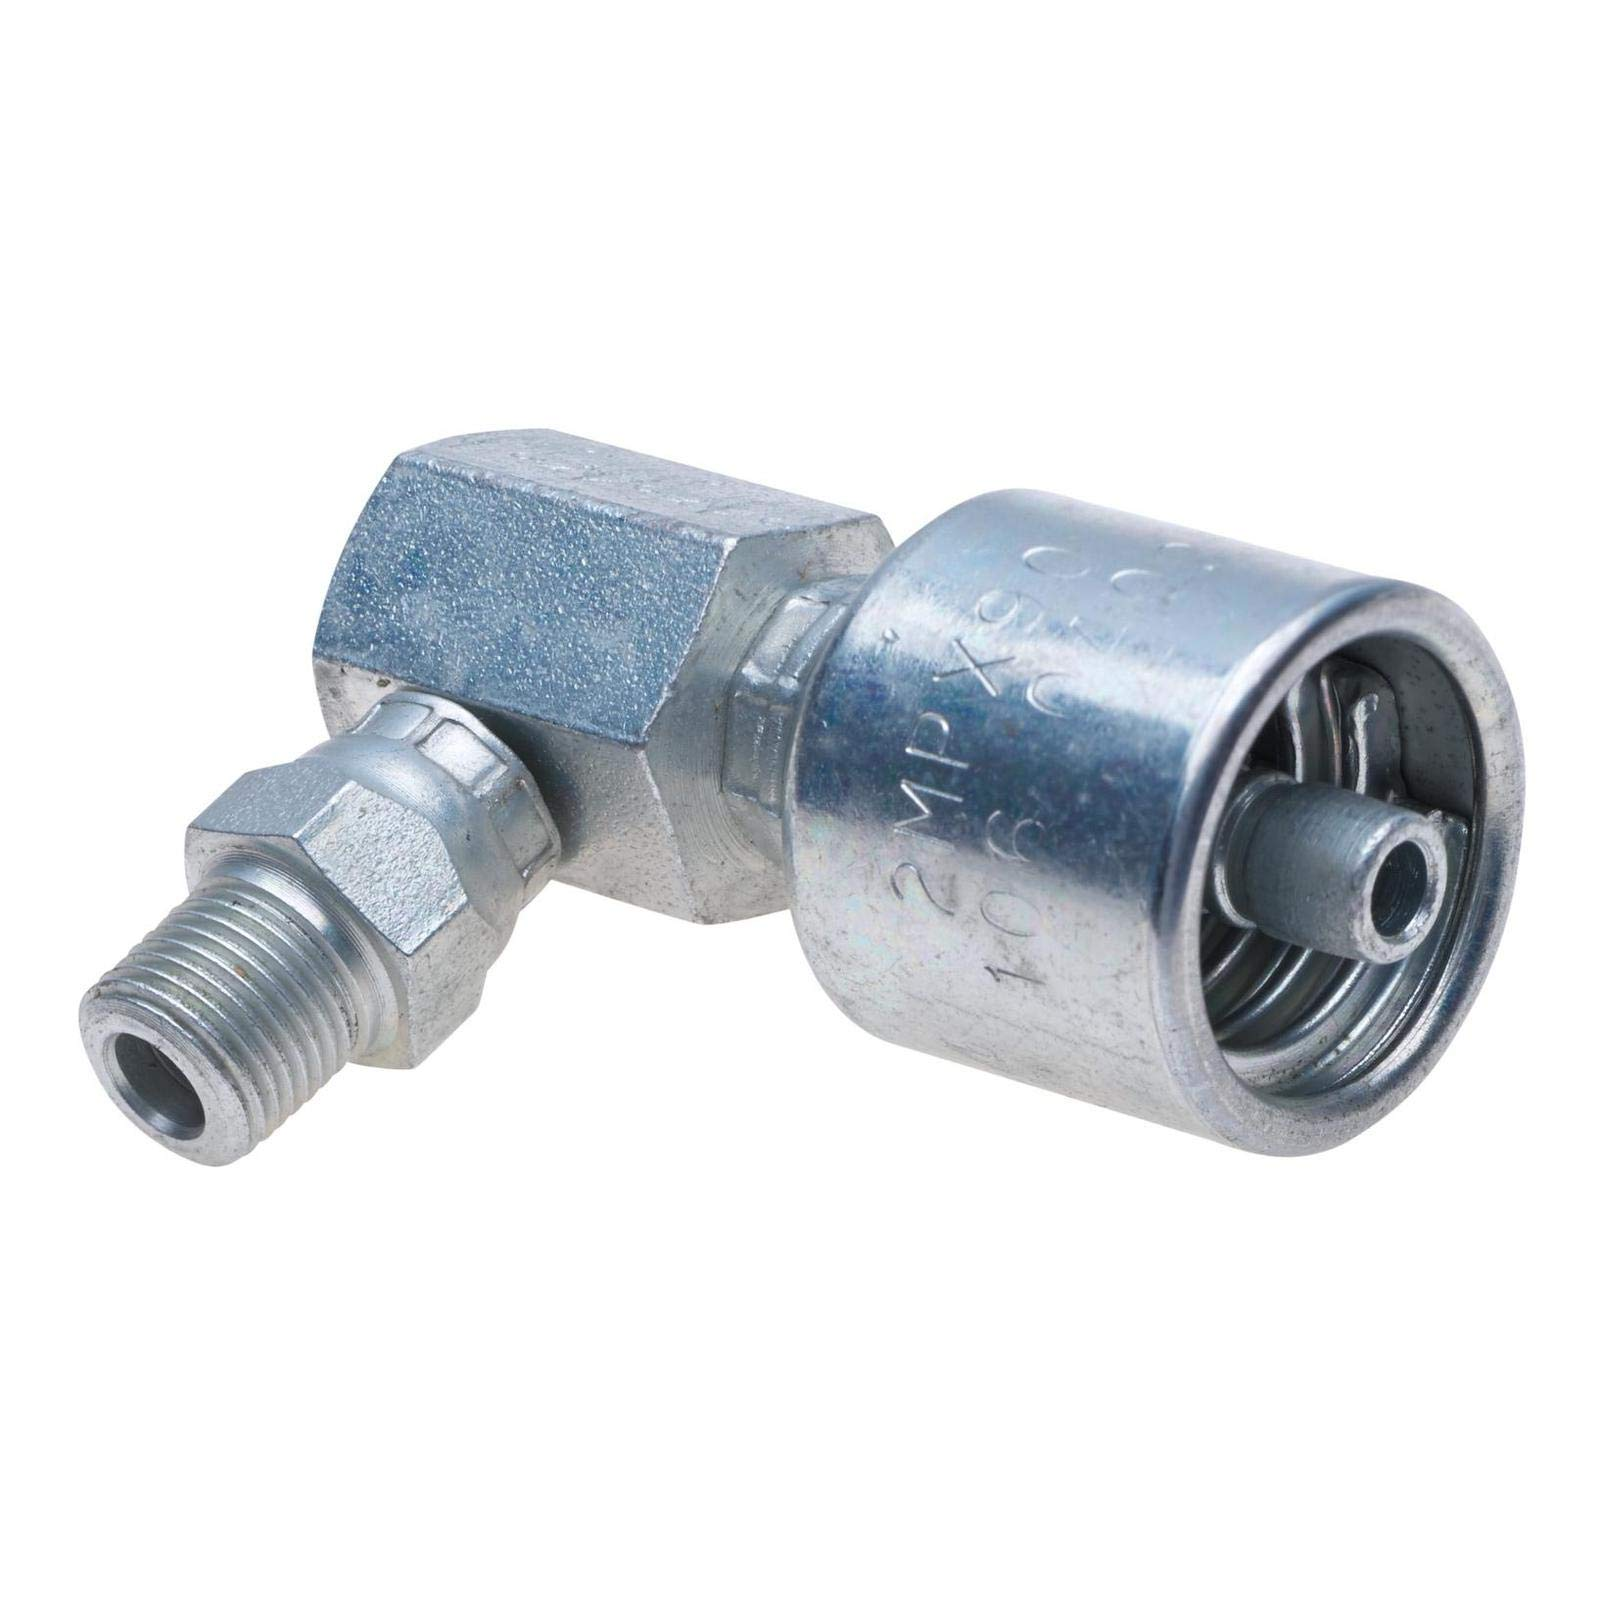 Gates G25106-0808 Steering Coupling Assembly